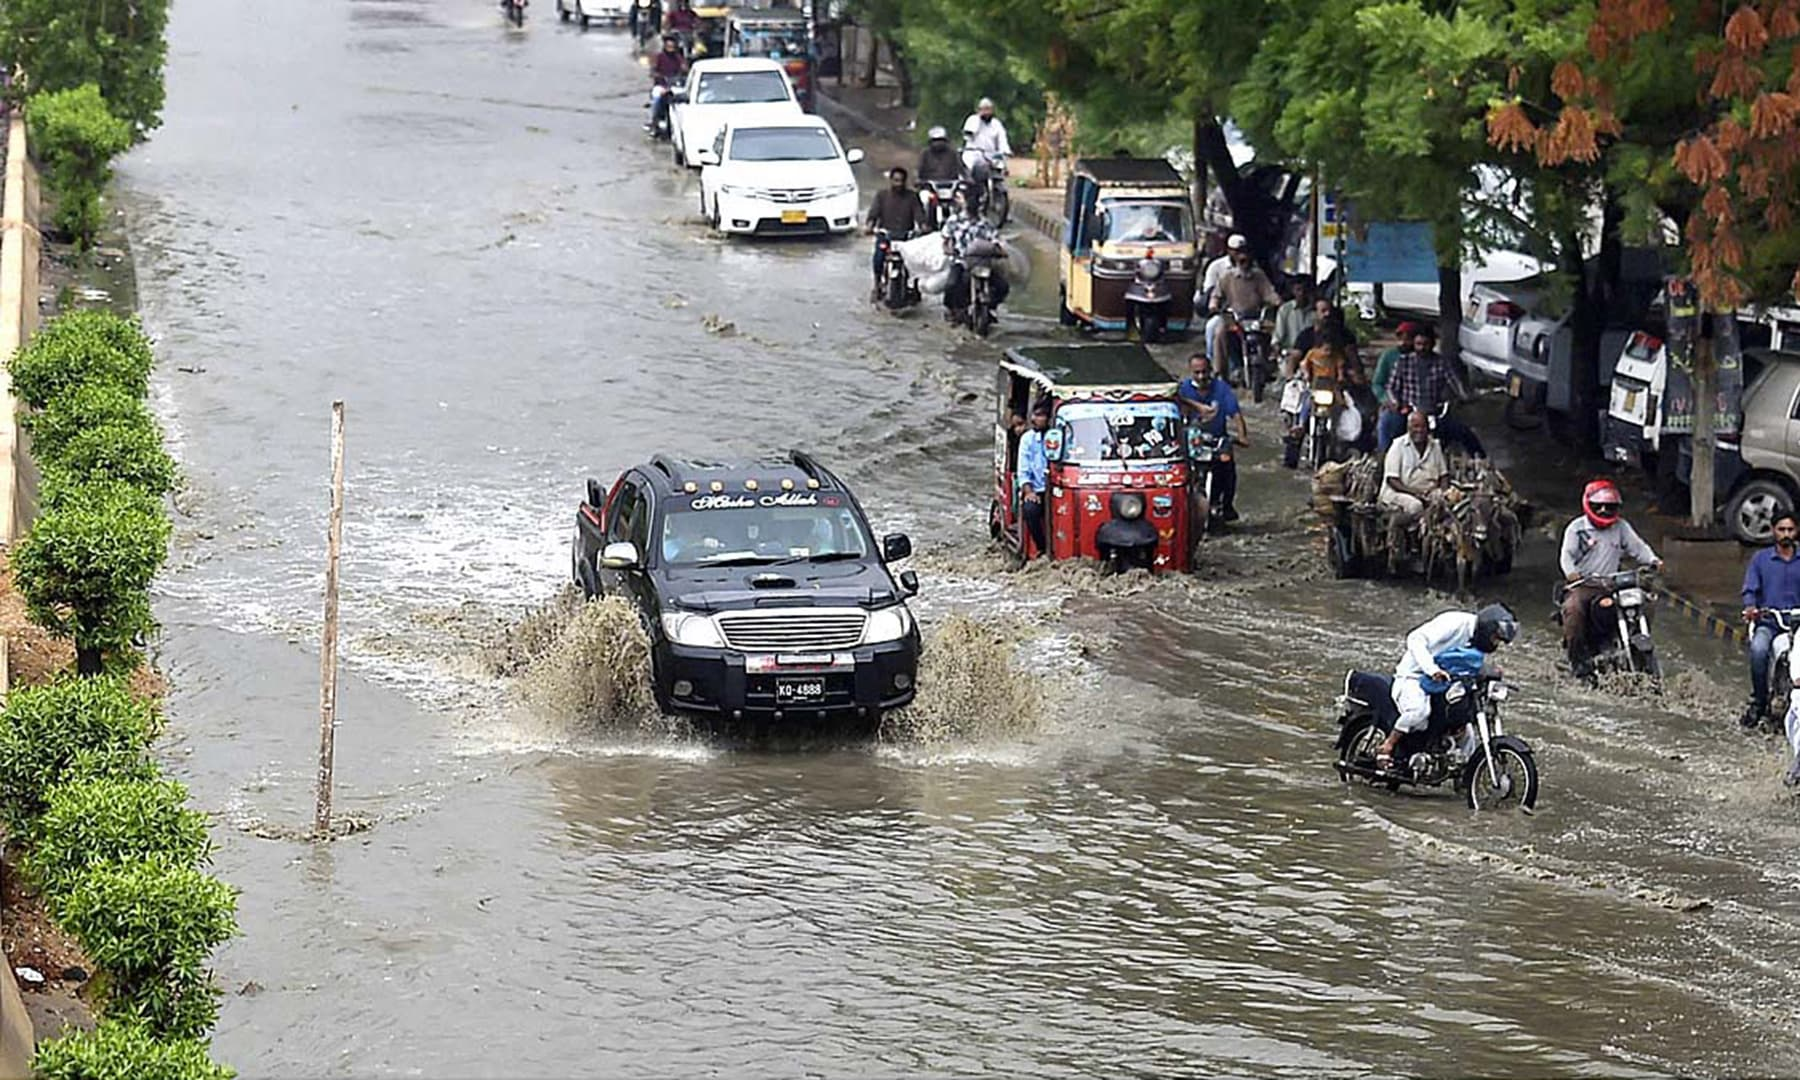 Vehicles pass through a flooded road during rain in Karachi's Buffer Zone area. — APP